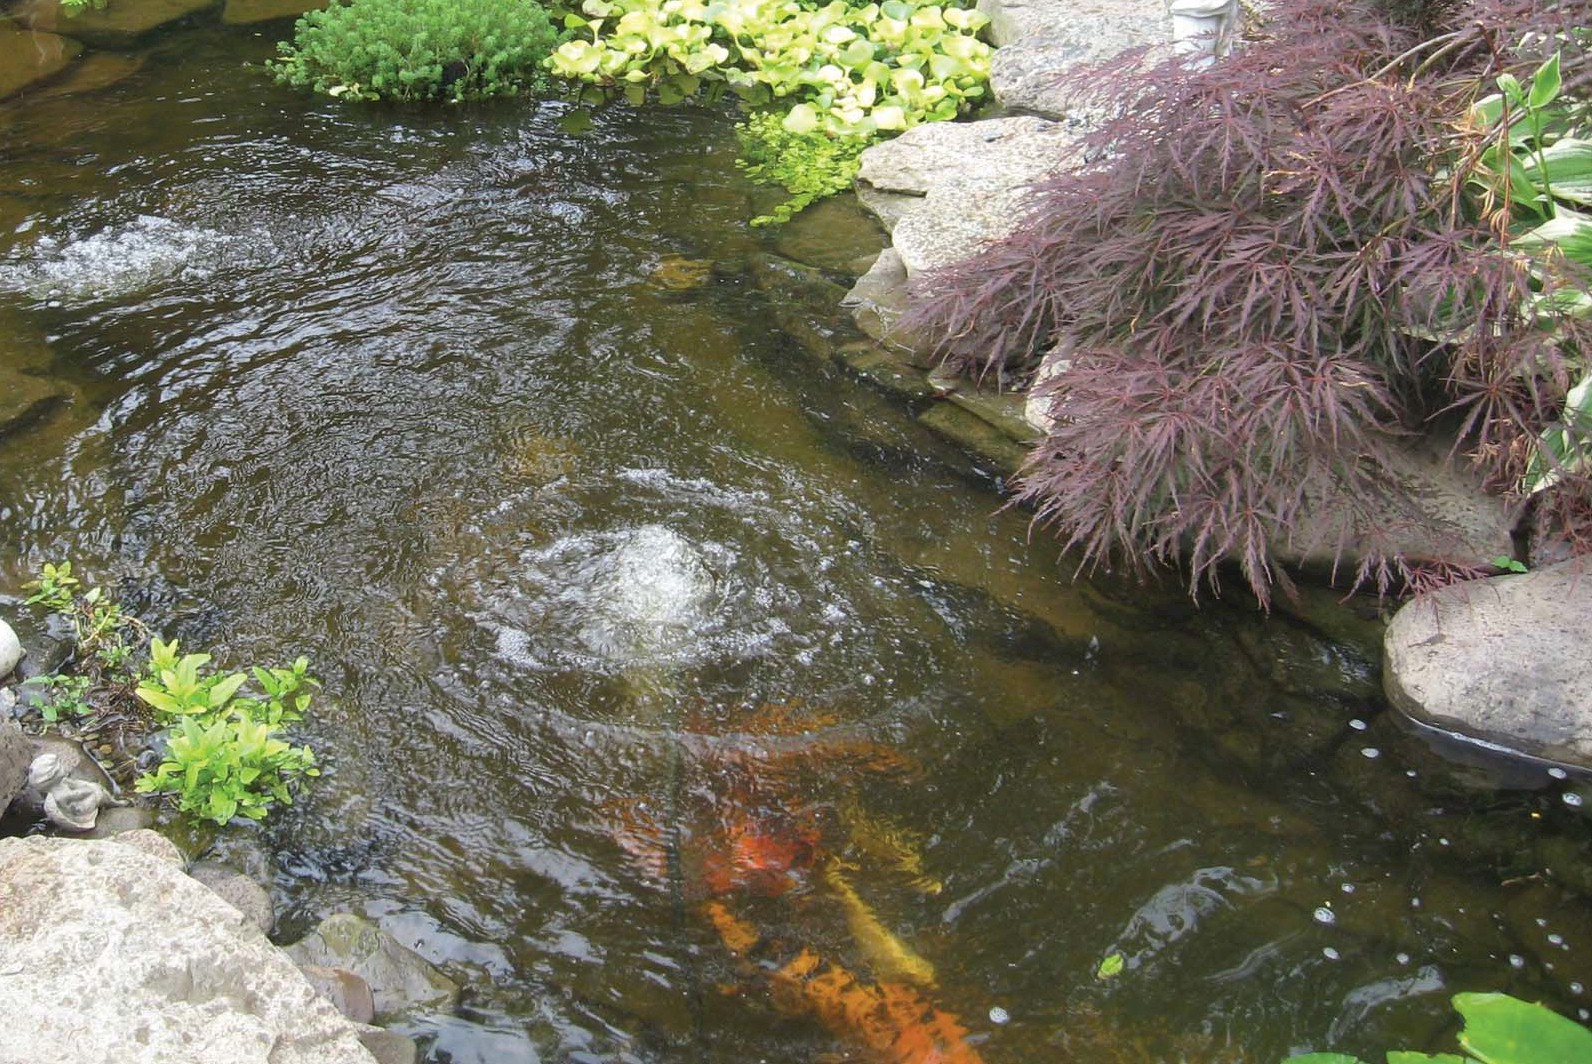 Emergency Pond Service Pump Replacement The Pond Doctor